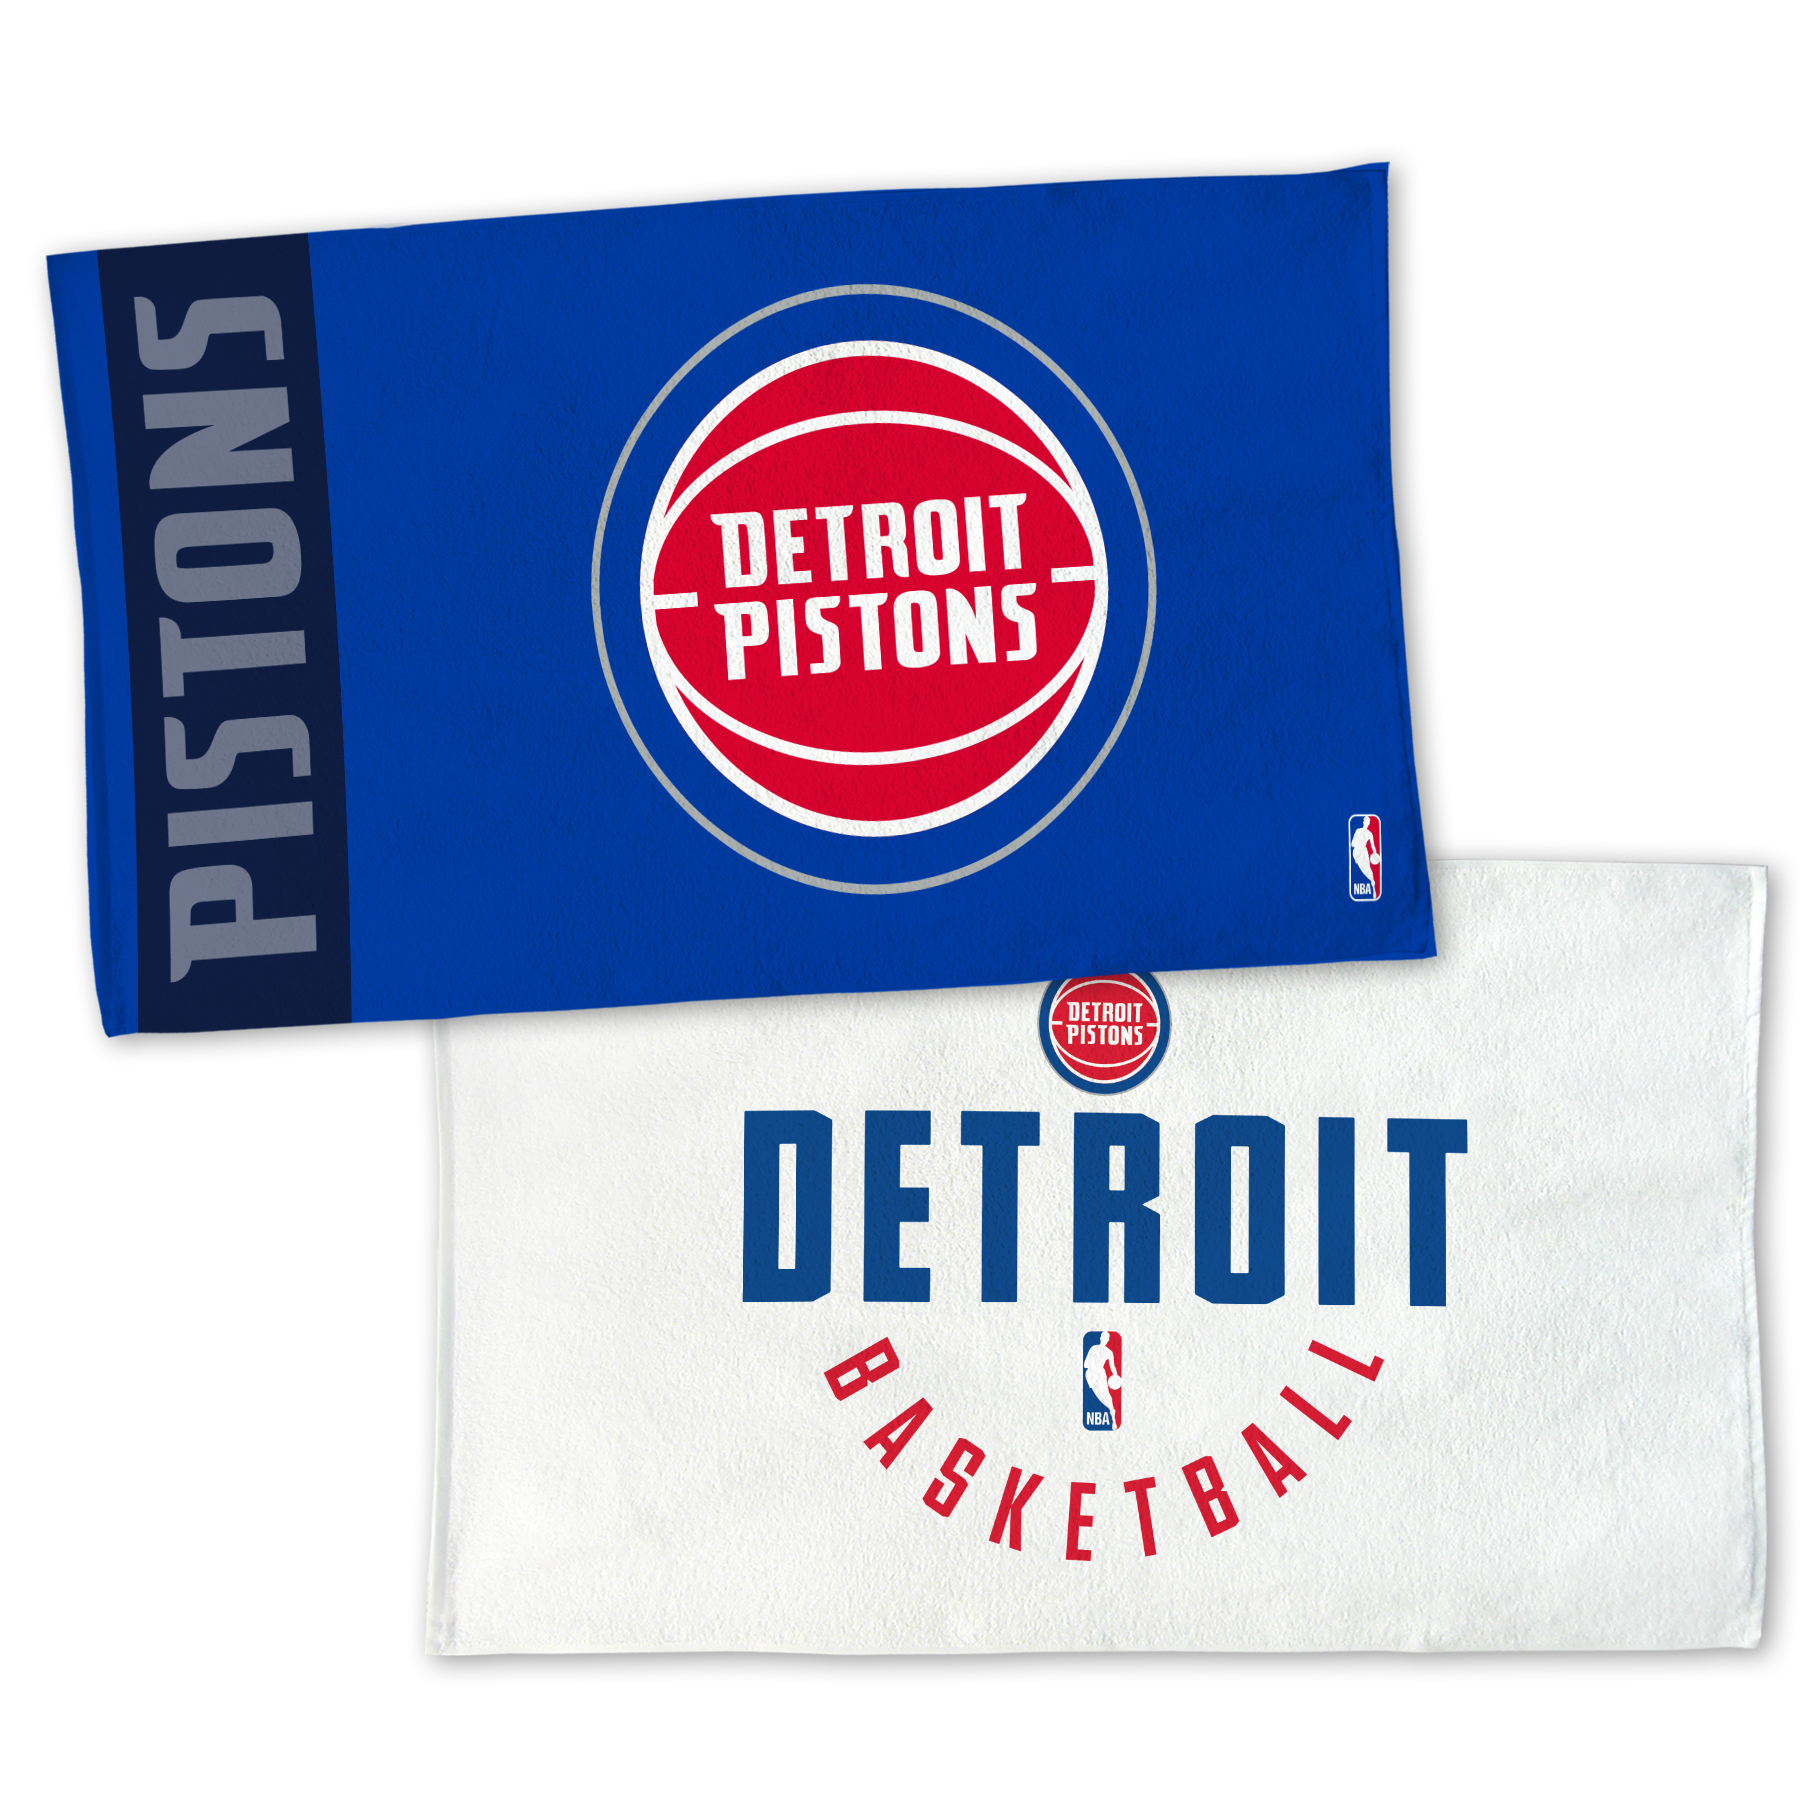 "Detroit Pistons WinCraft 22"" x 42"" Authentic On-Court Towel - No Size"